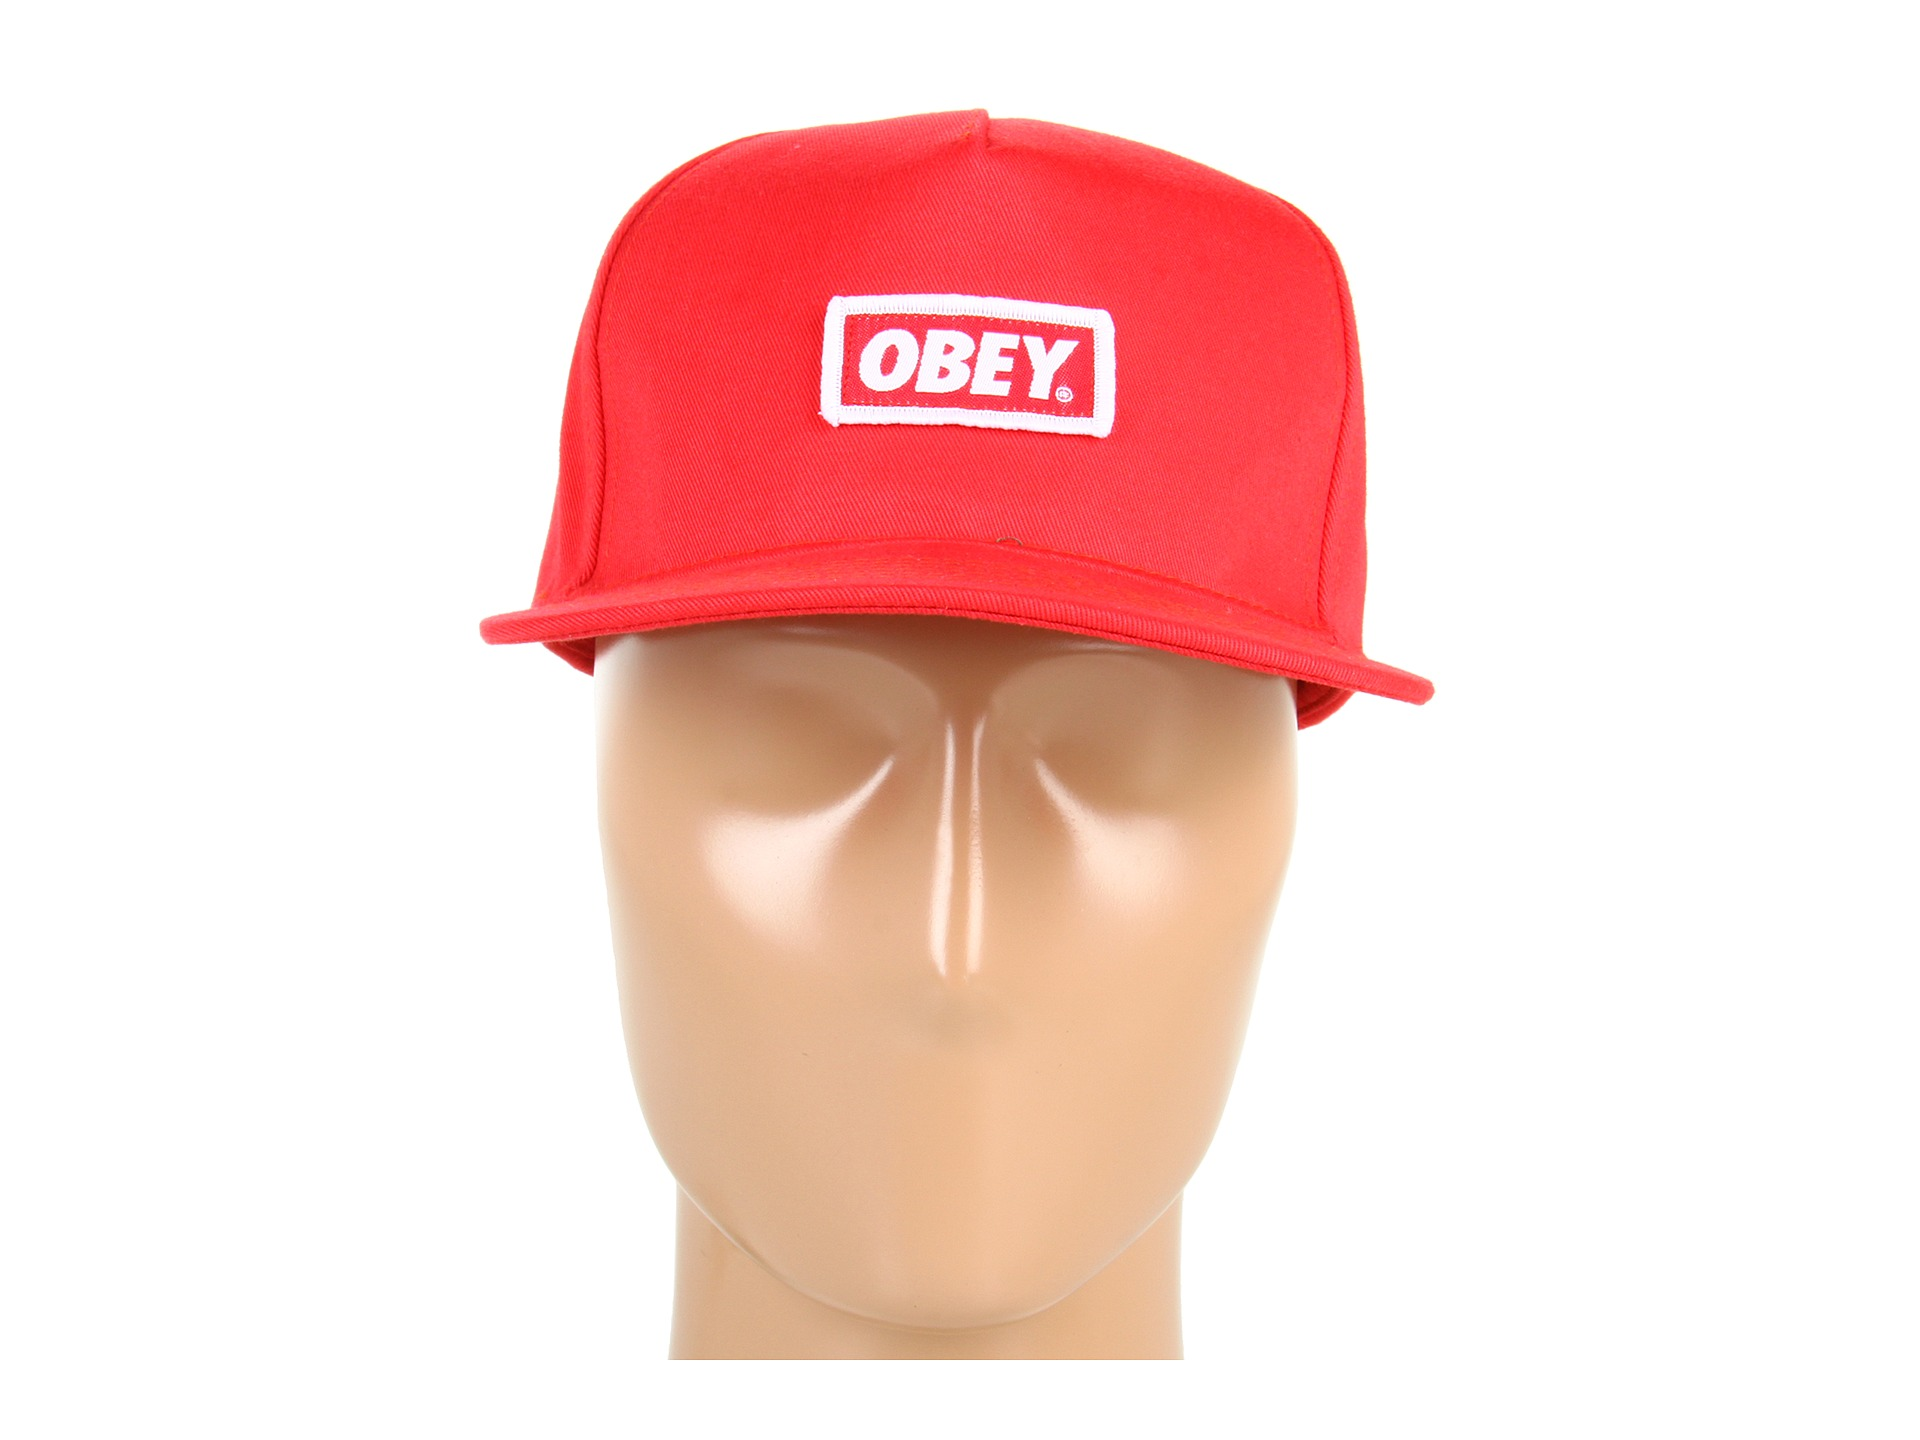 obey new original snapback hat accessories shipped free